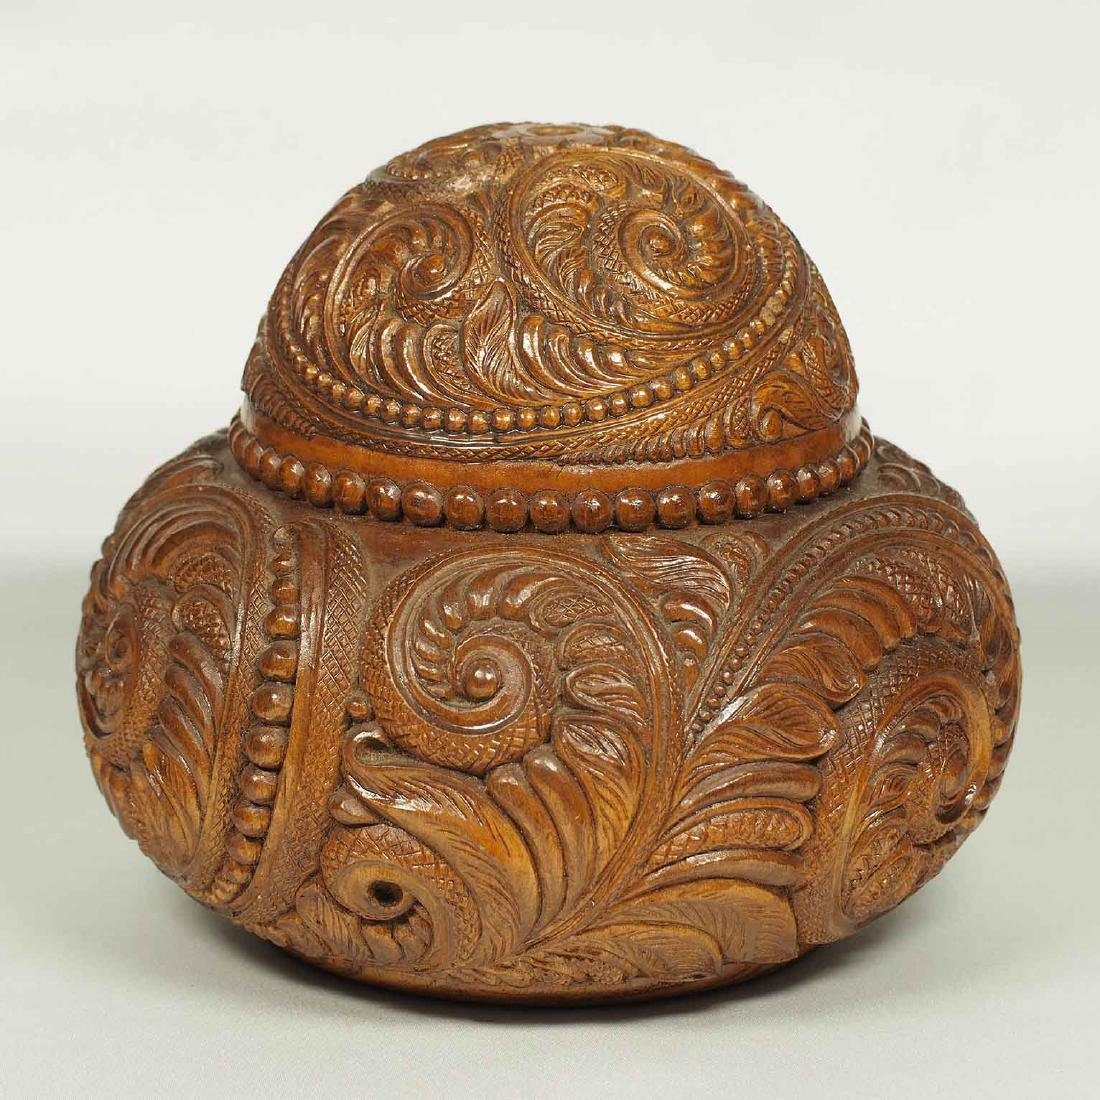 Hand Carved Wood Lidded Vessel with Fern Design